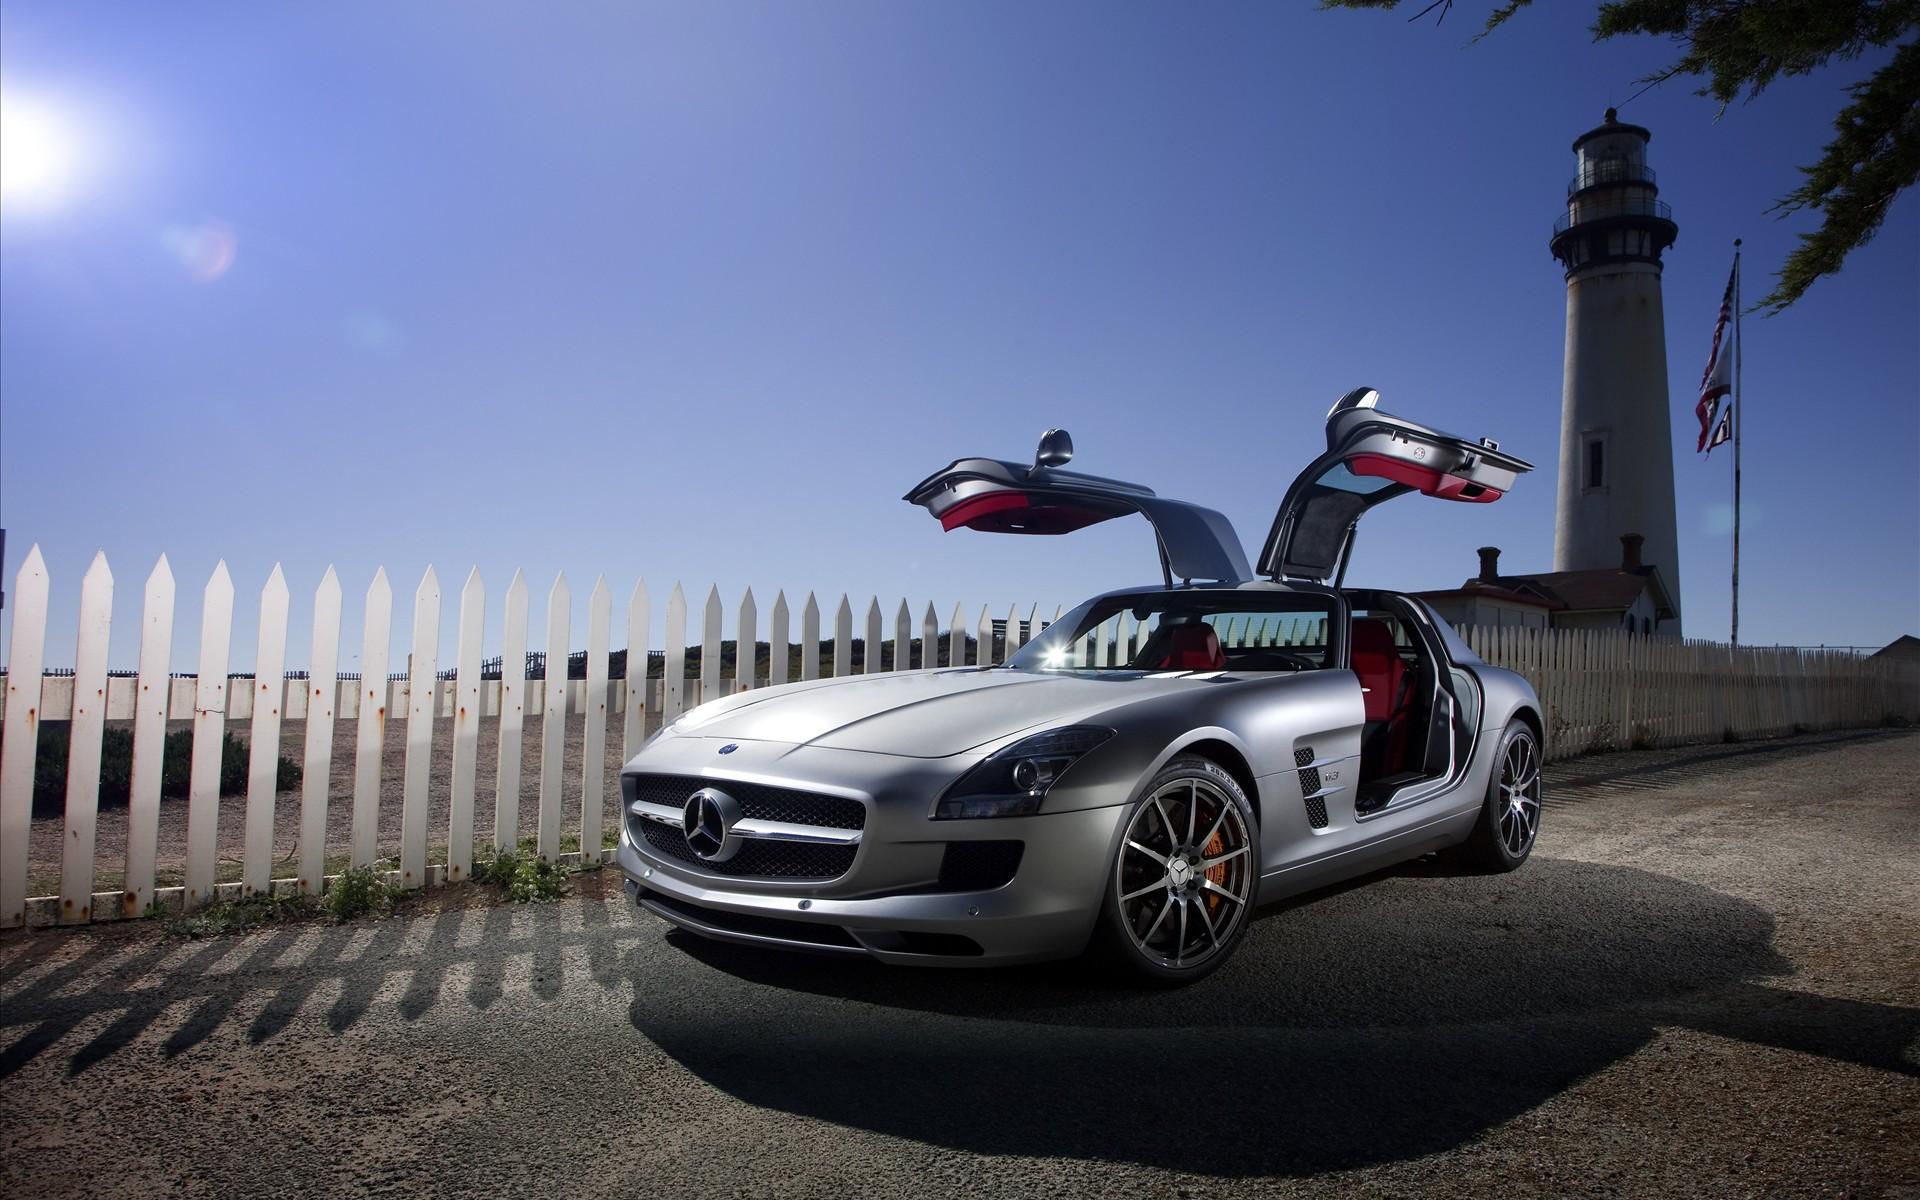 2011 Mercedes Benz SLS AMG 17 Wallpapers HD Wallpapers 1920x1200